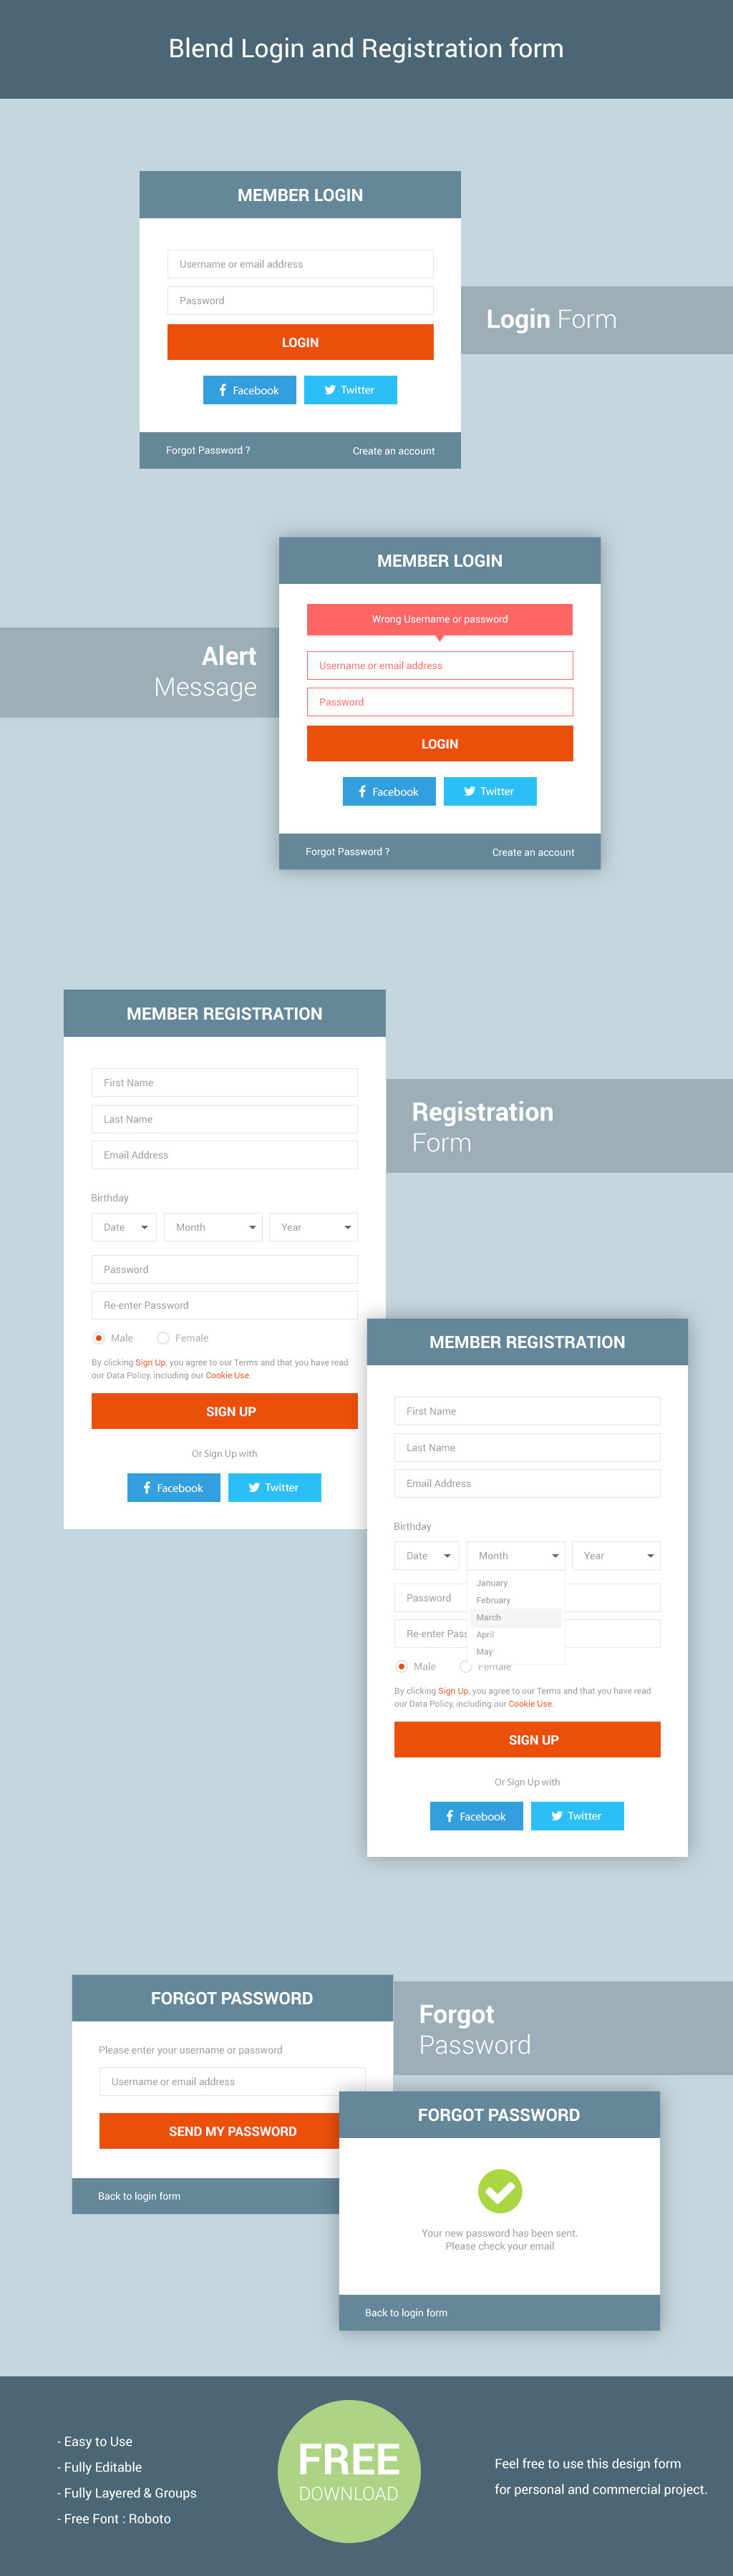 Blend Login And Registration Form On Behance  Onboarding